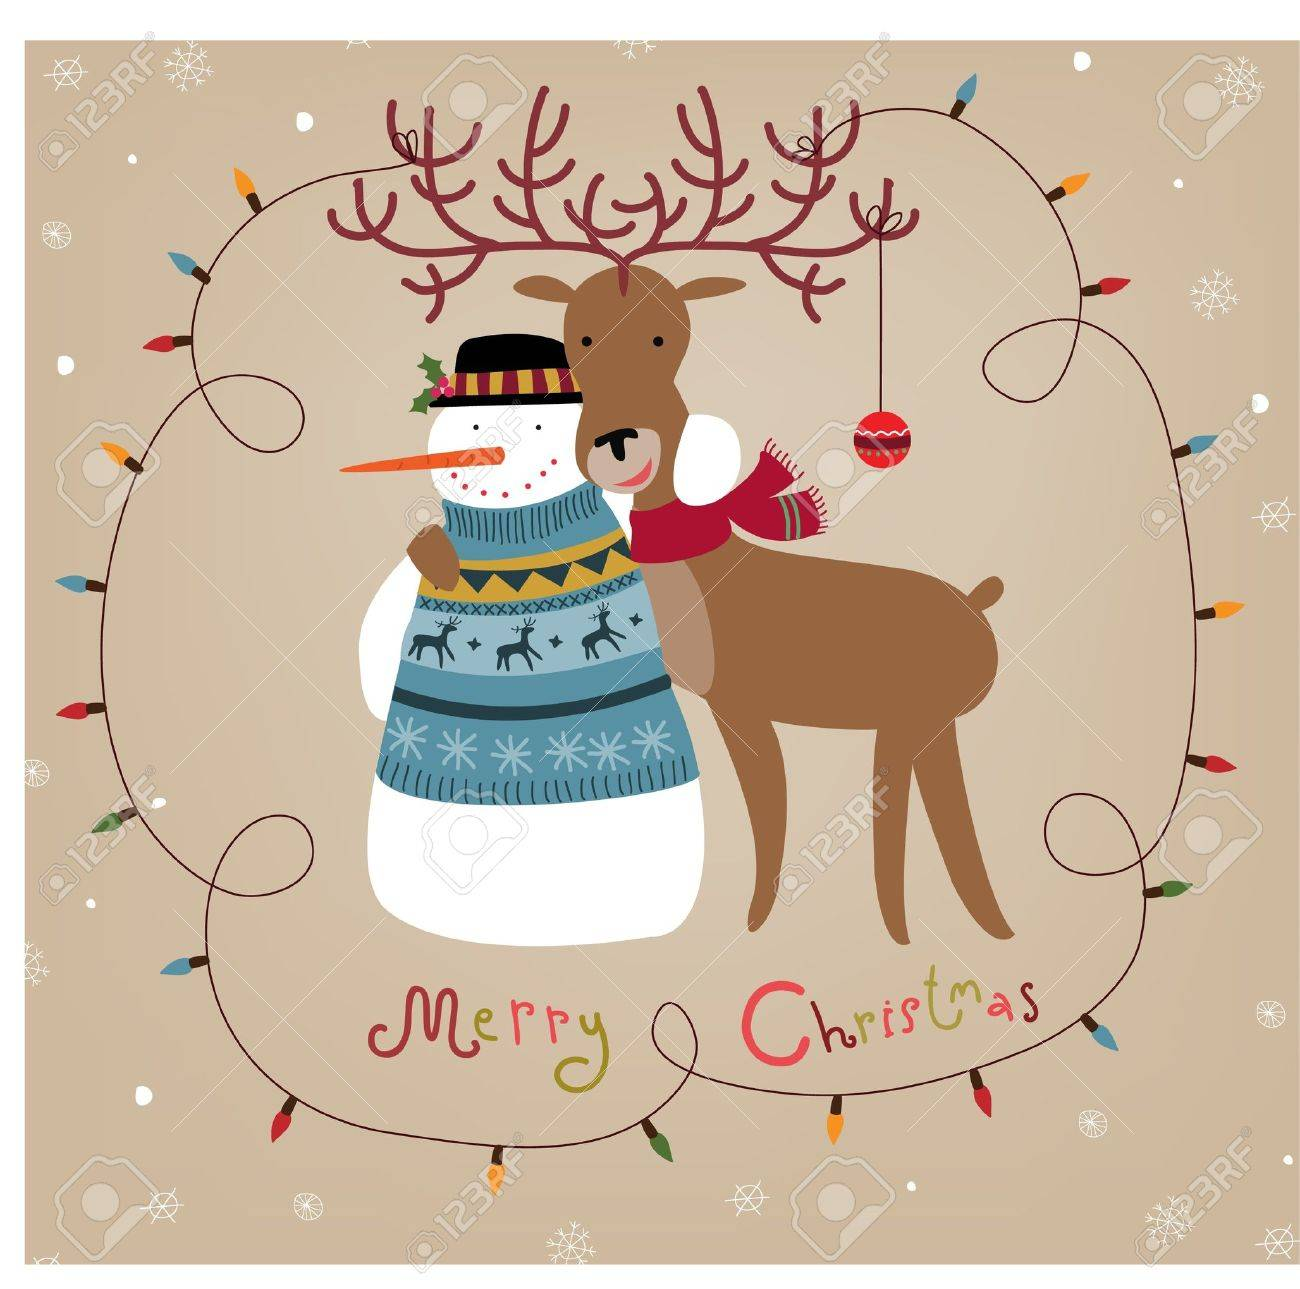 Christmas background with snowman and reindeer Stock Vector - 10832115